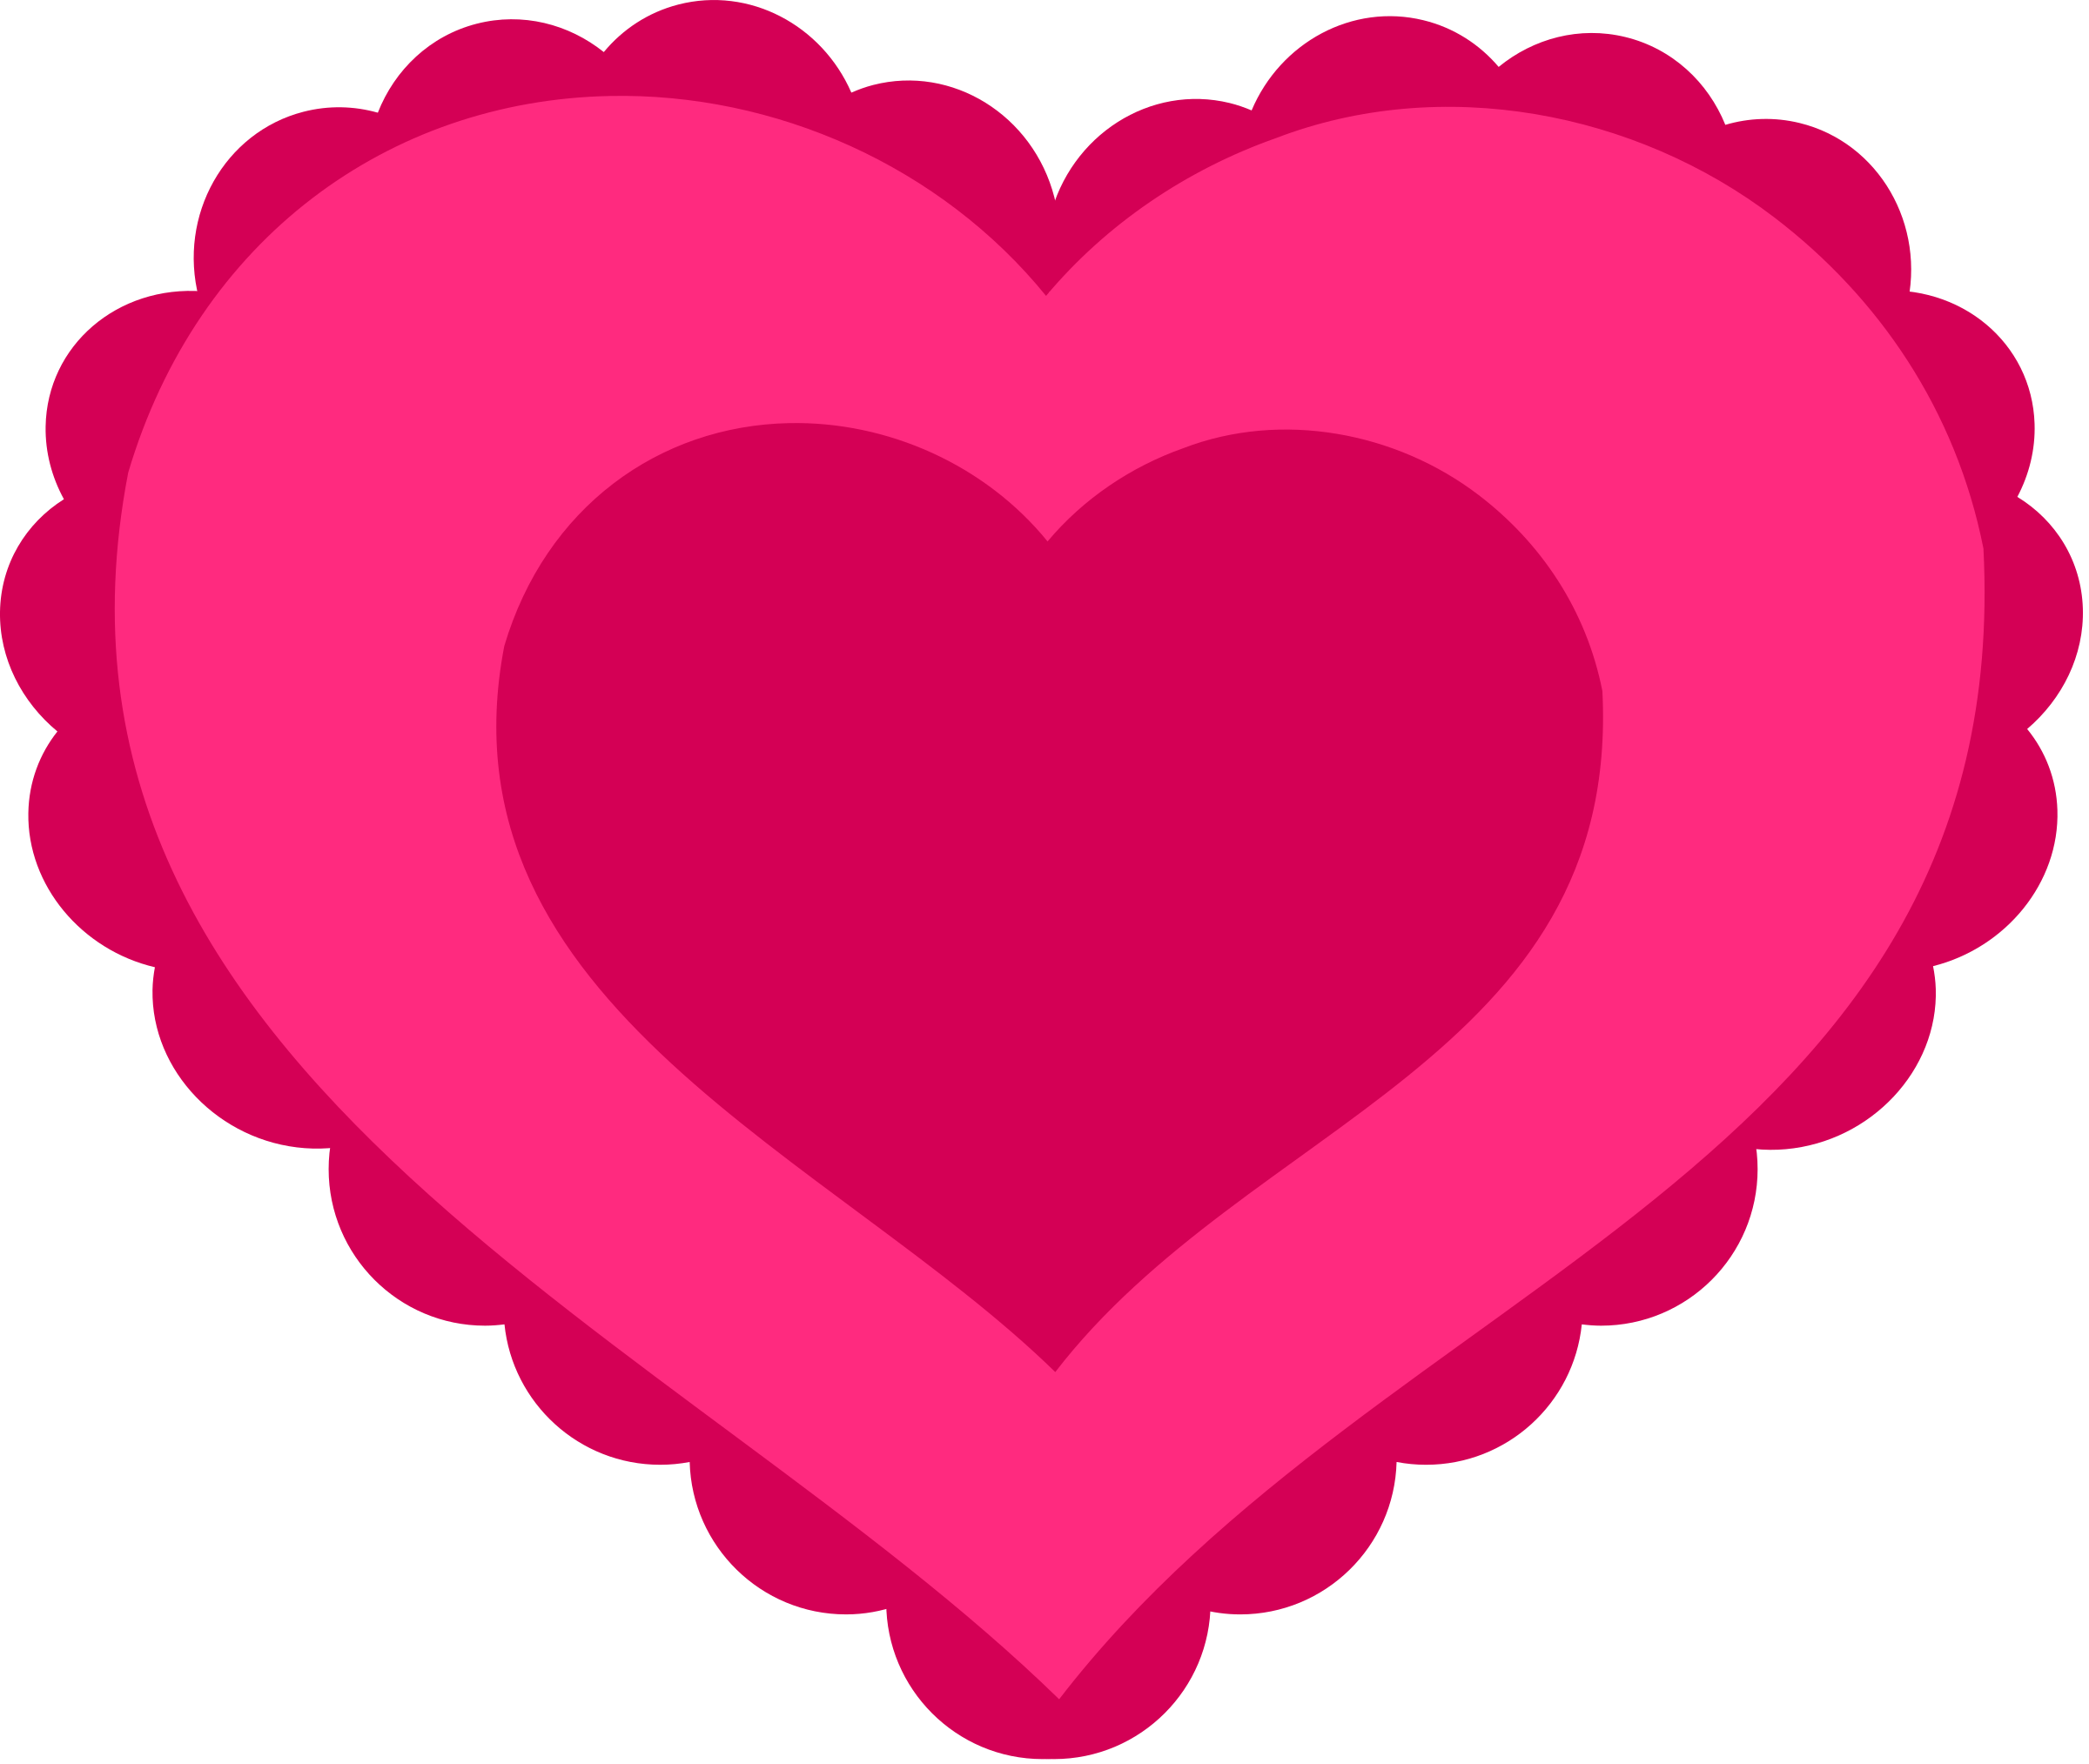 Striped heart clipart stock Clipart - Pink Lace Heart stock